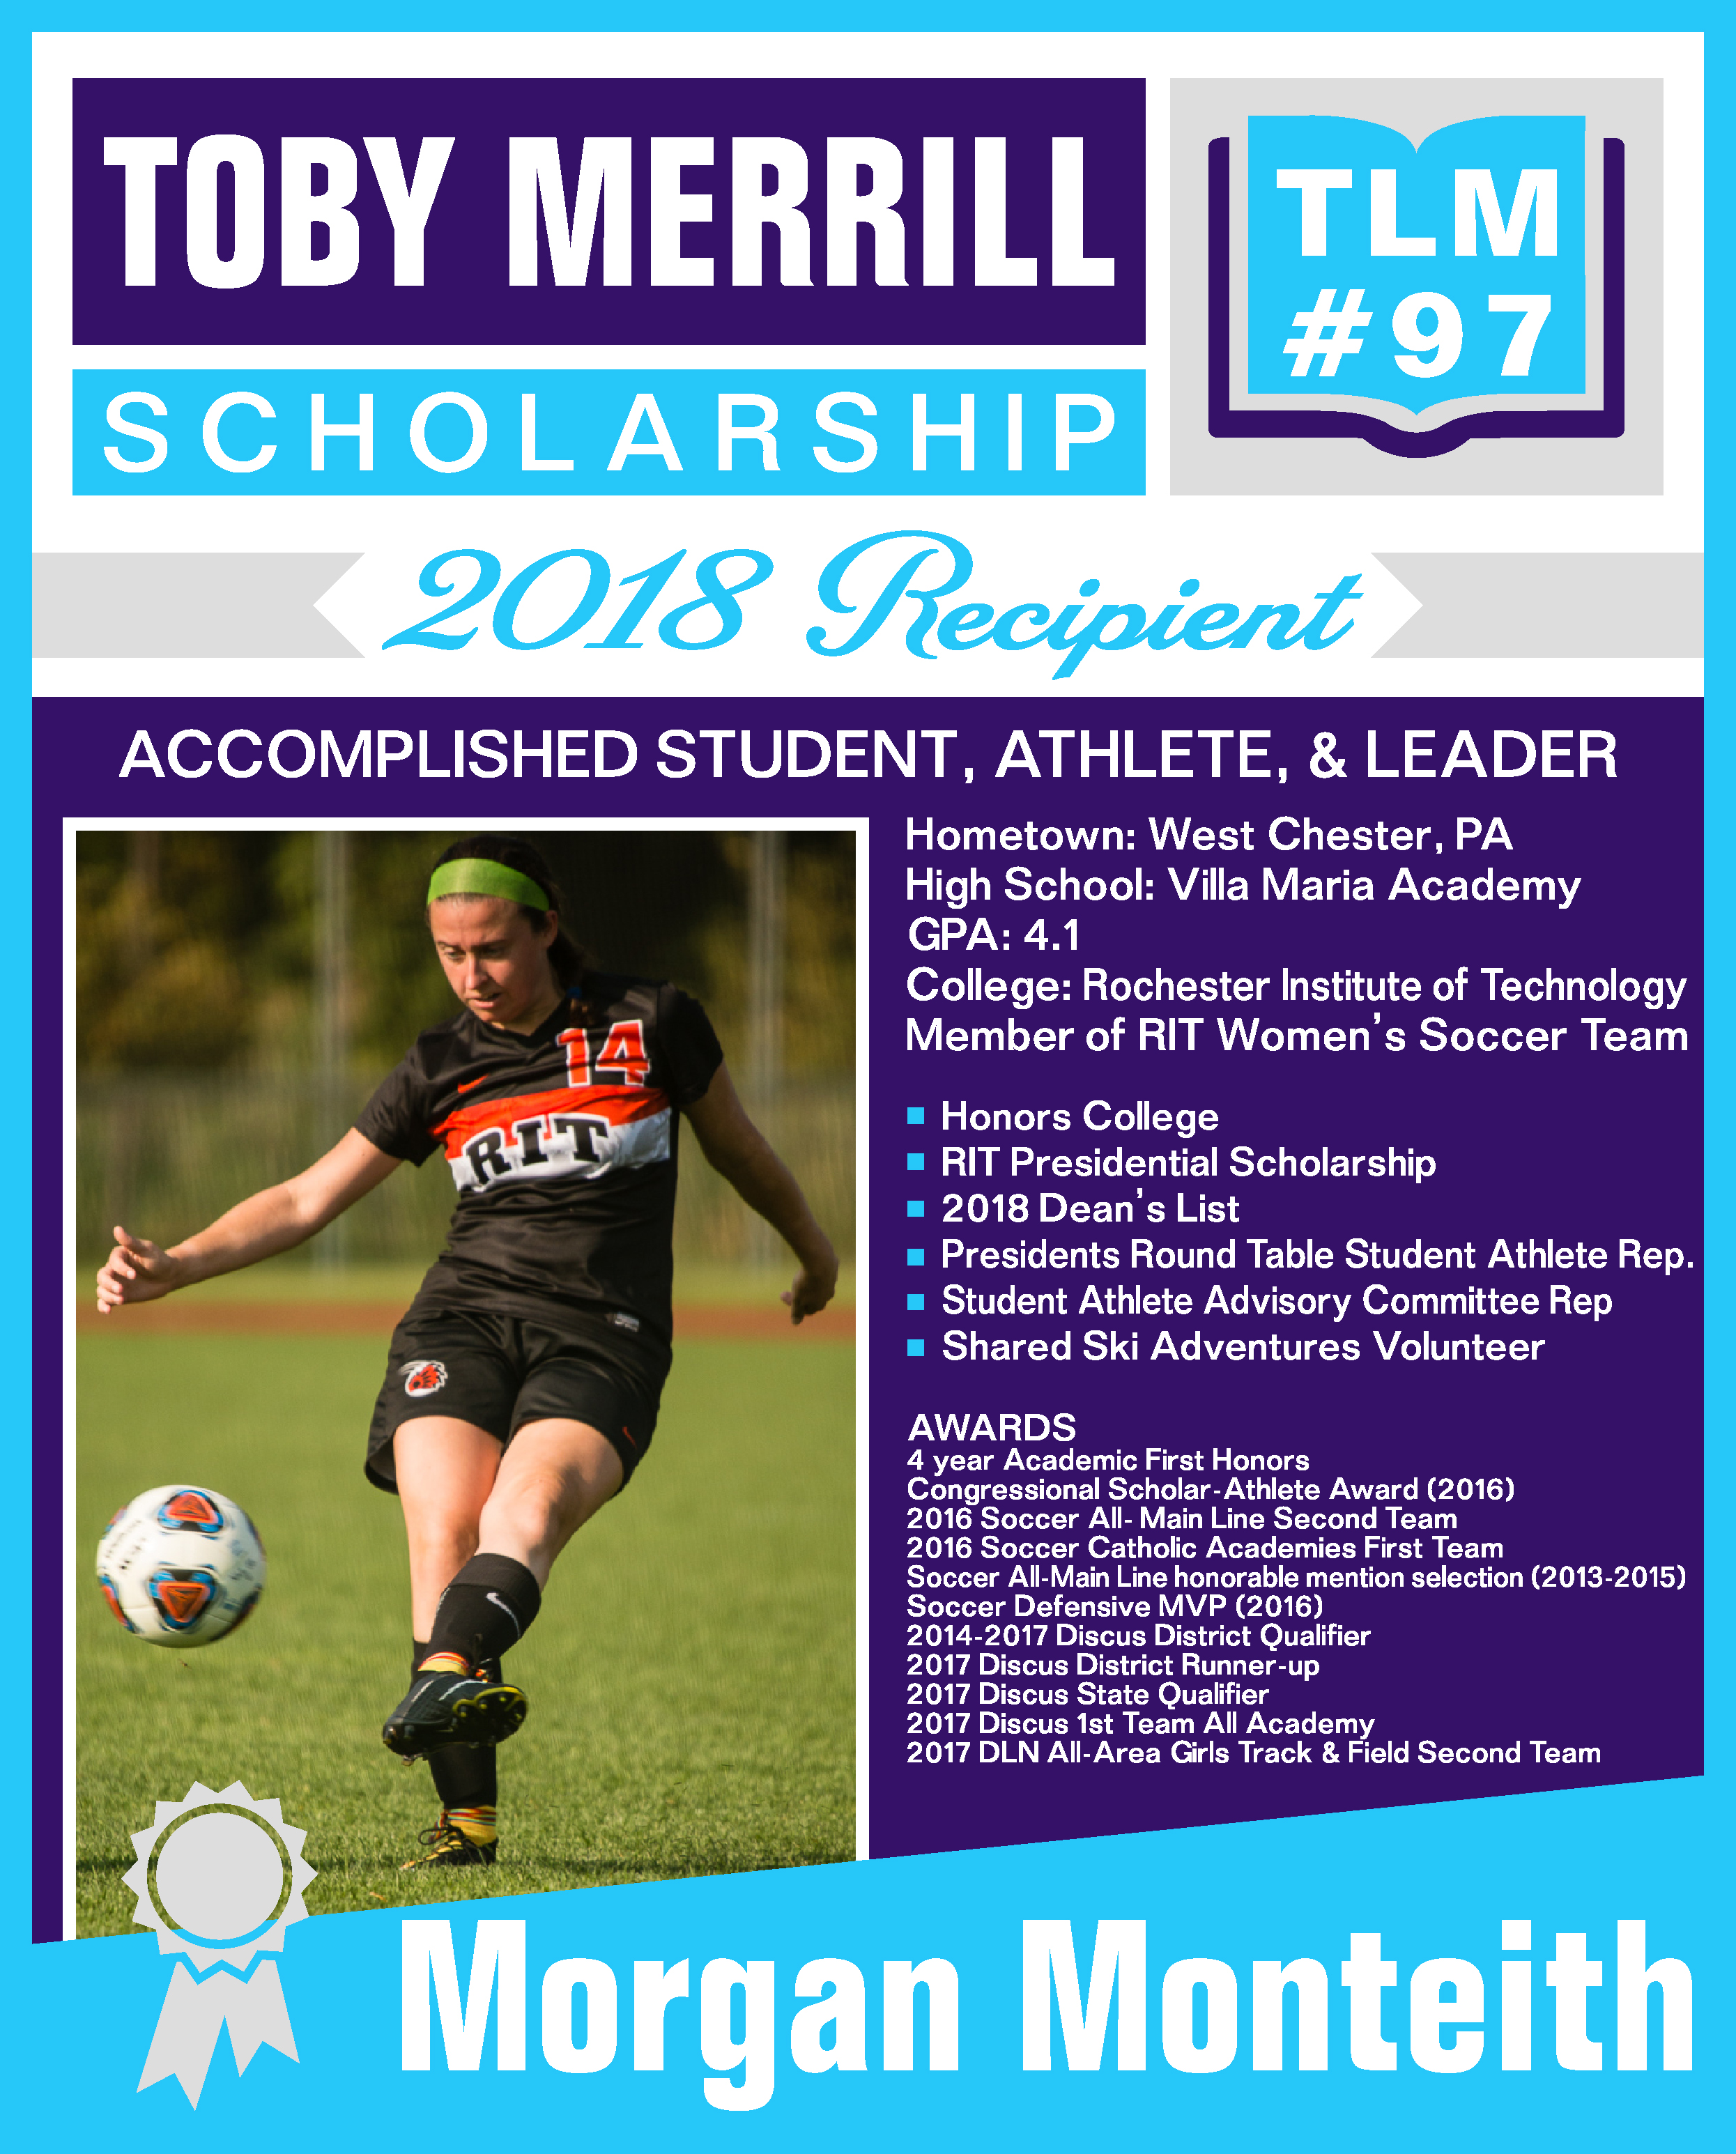 TLM-SCOLARSHIP-RECIPIENT-MORGAN-MONTEITH-2 copy.jpg